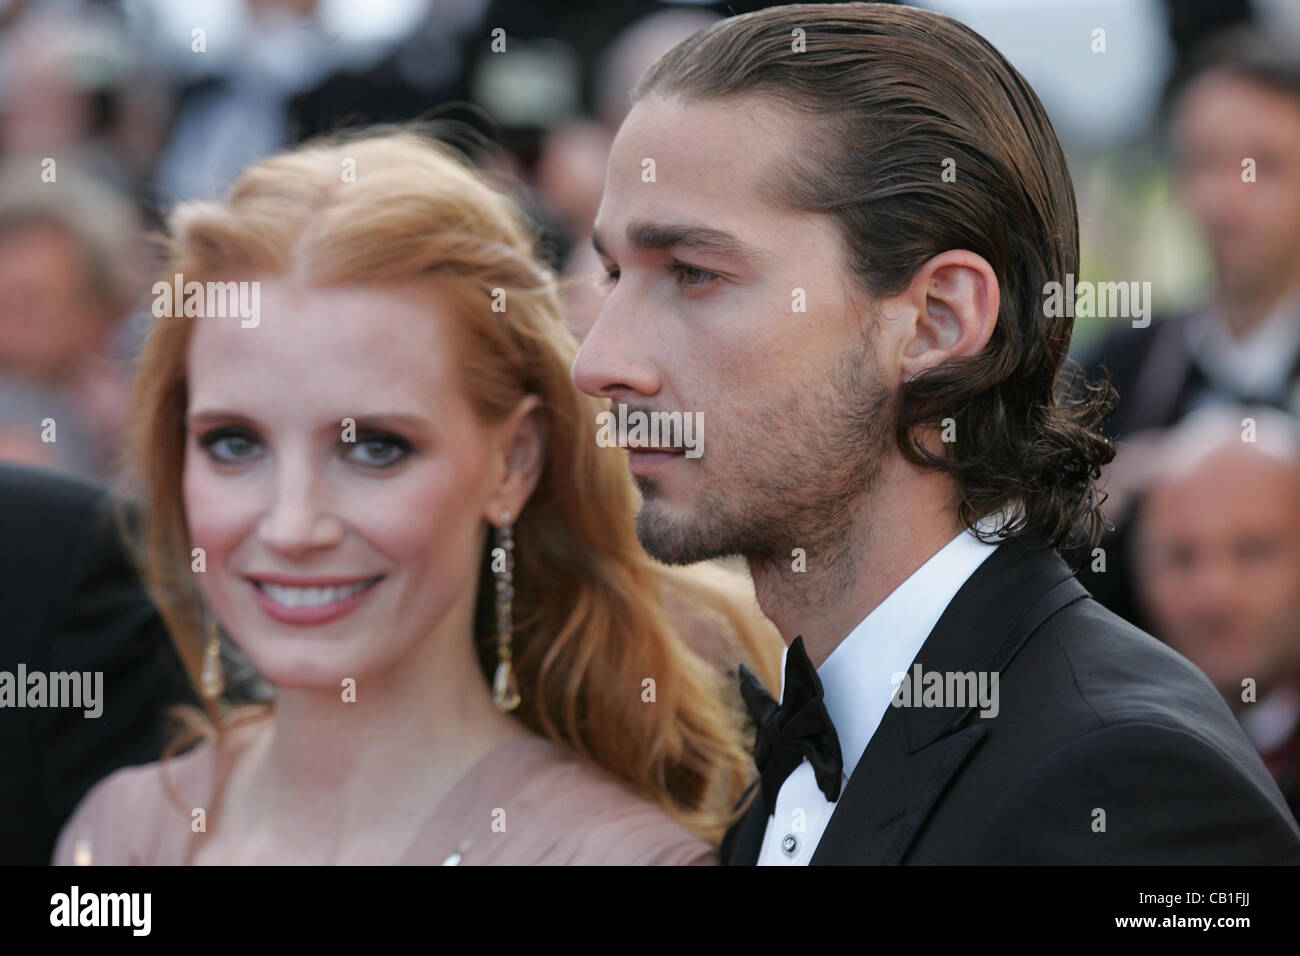 Cannes France 19052012jessica Chastain Shia Labeouf Stock